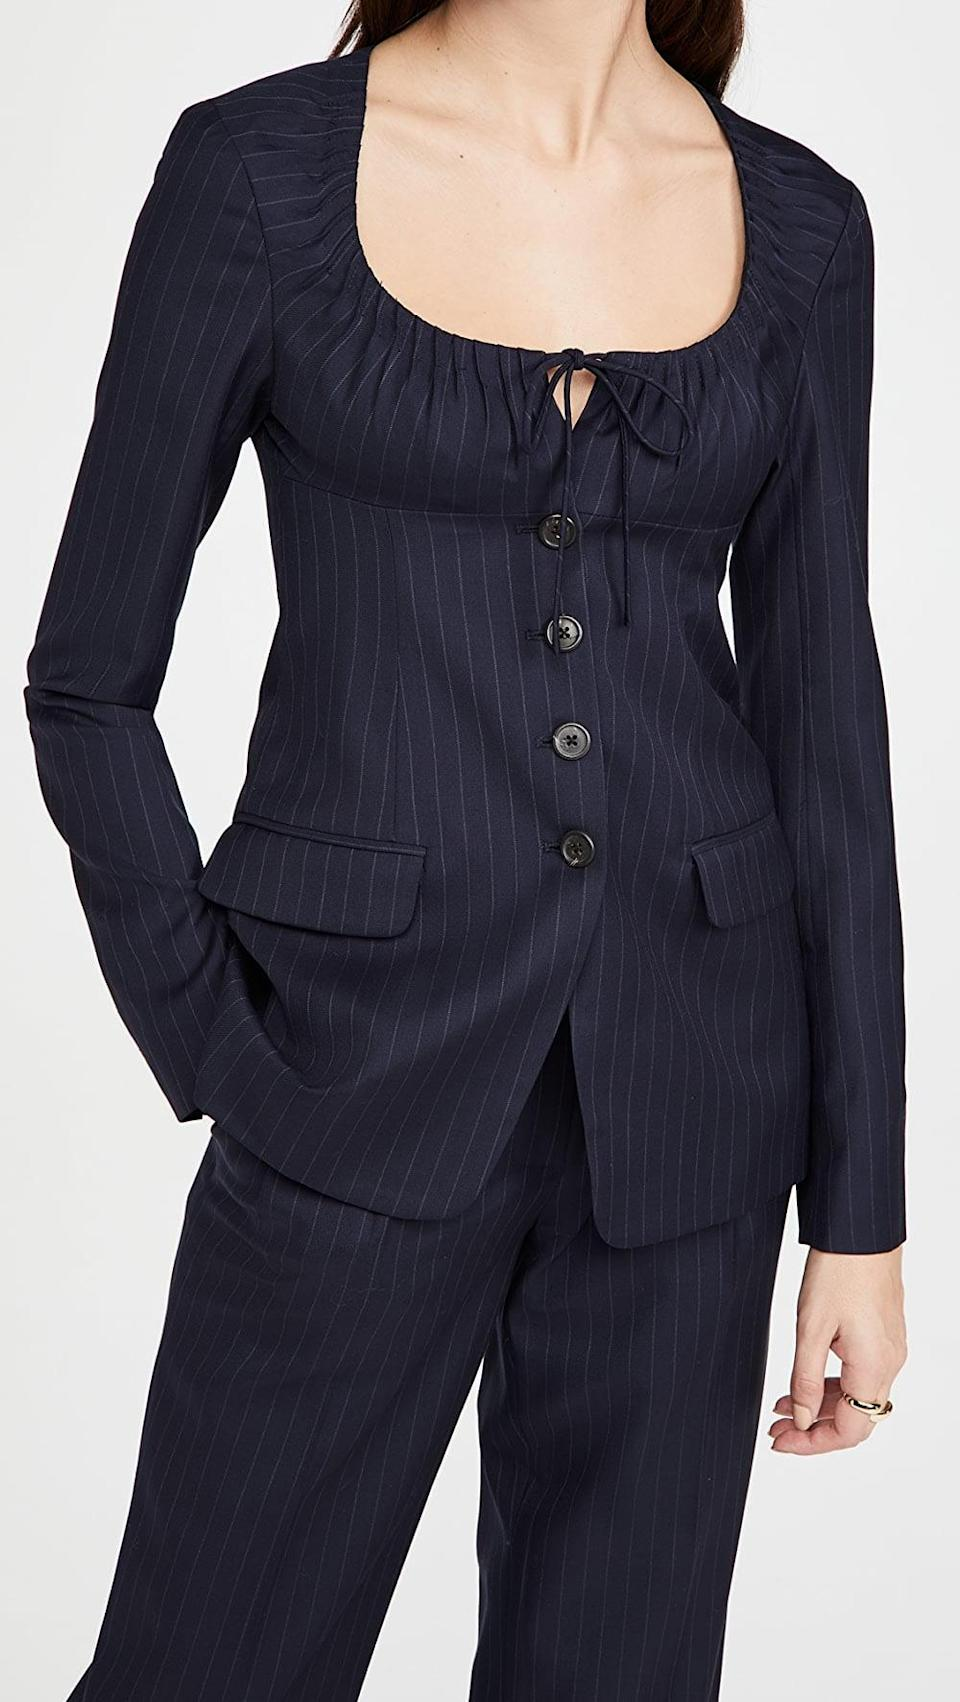 <p>This <span>By Any Other Name Scoop Neck Tailored Blazer</span> ($995) is high on my wish list. From the sleek profile to the ruched details, everything about it oozes femininity and effortless confidence. </p>